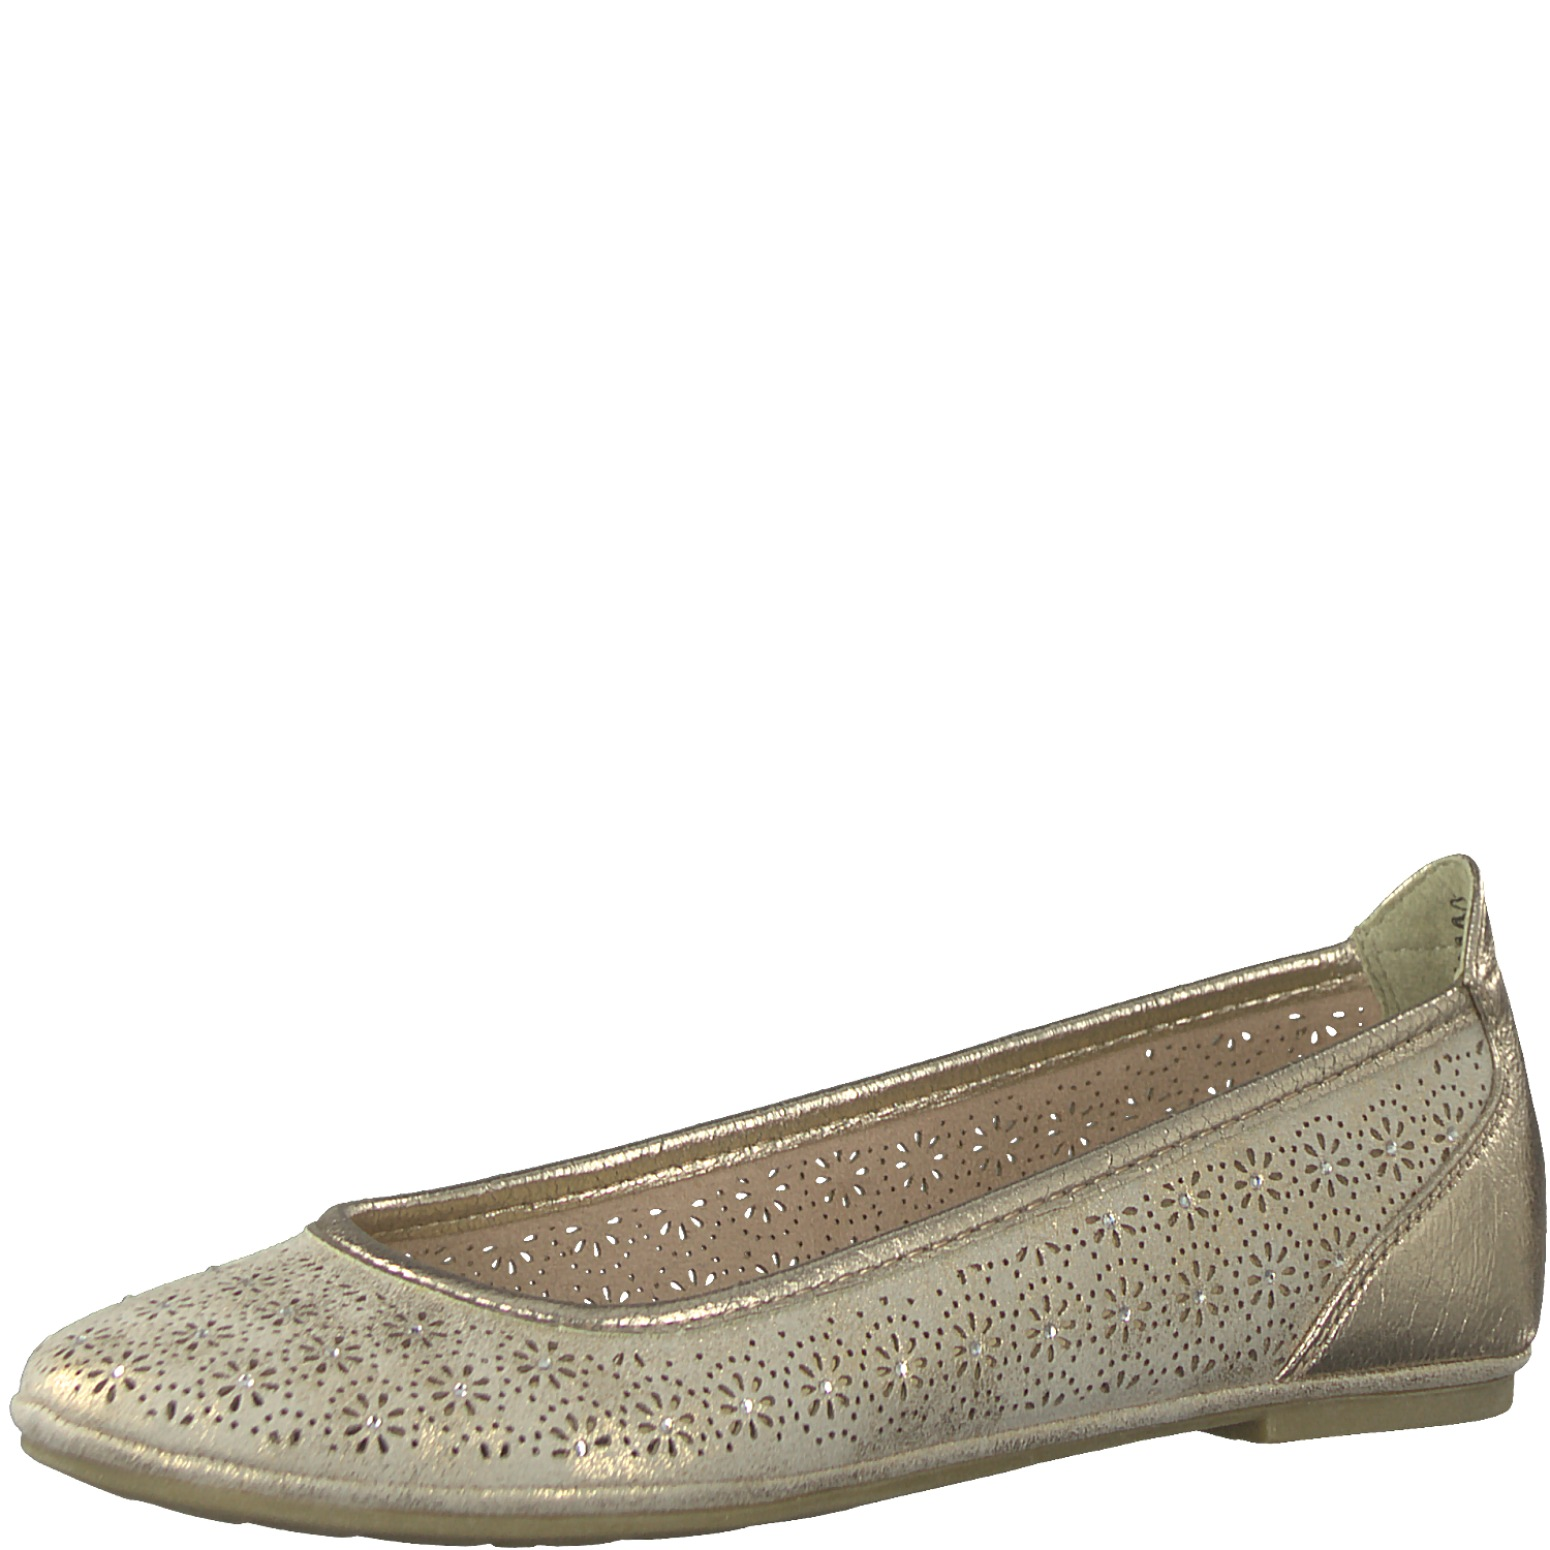 marco tozzi-2-22107-22-rose gold-slip on -shoe-lime shoe co-berwick upon tweed